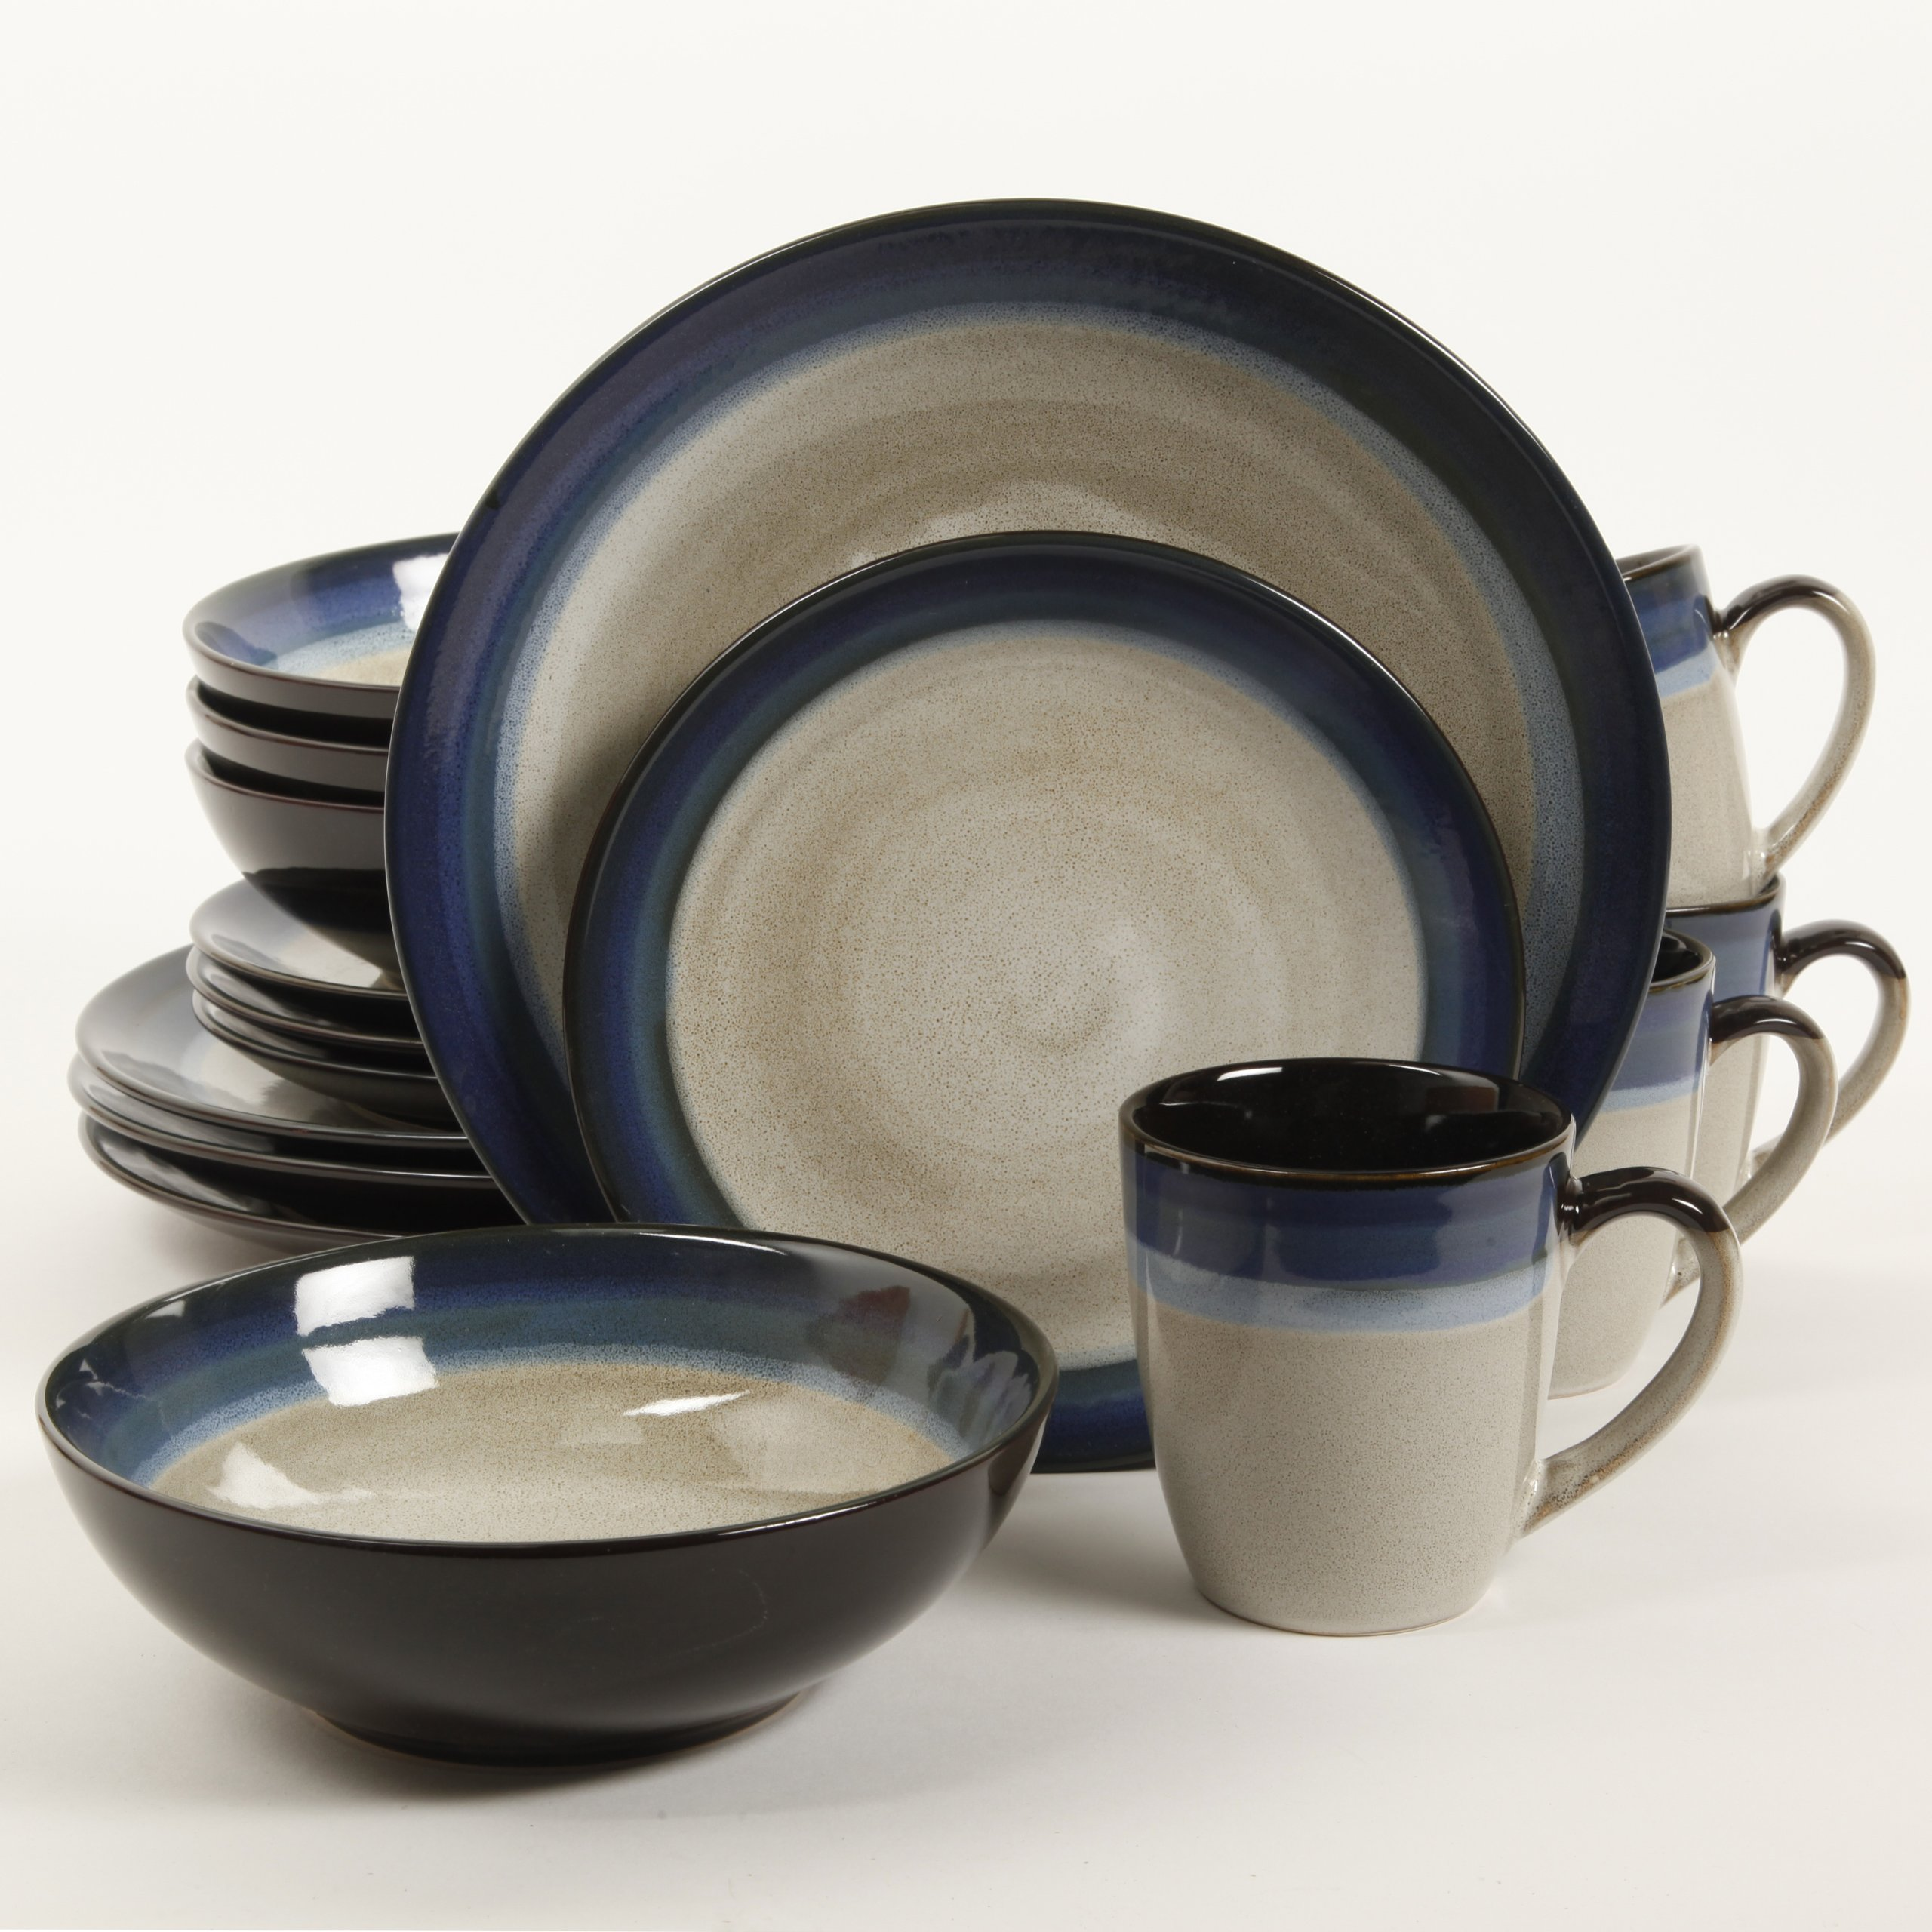 Gibson Elite 91547.16RM Couture Bands 16-Piece Dinnerware Set, Blue and Cream by Gibson (Image #2)